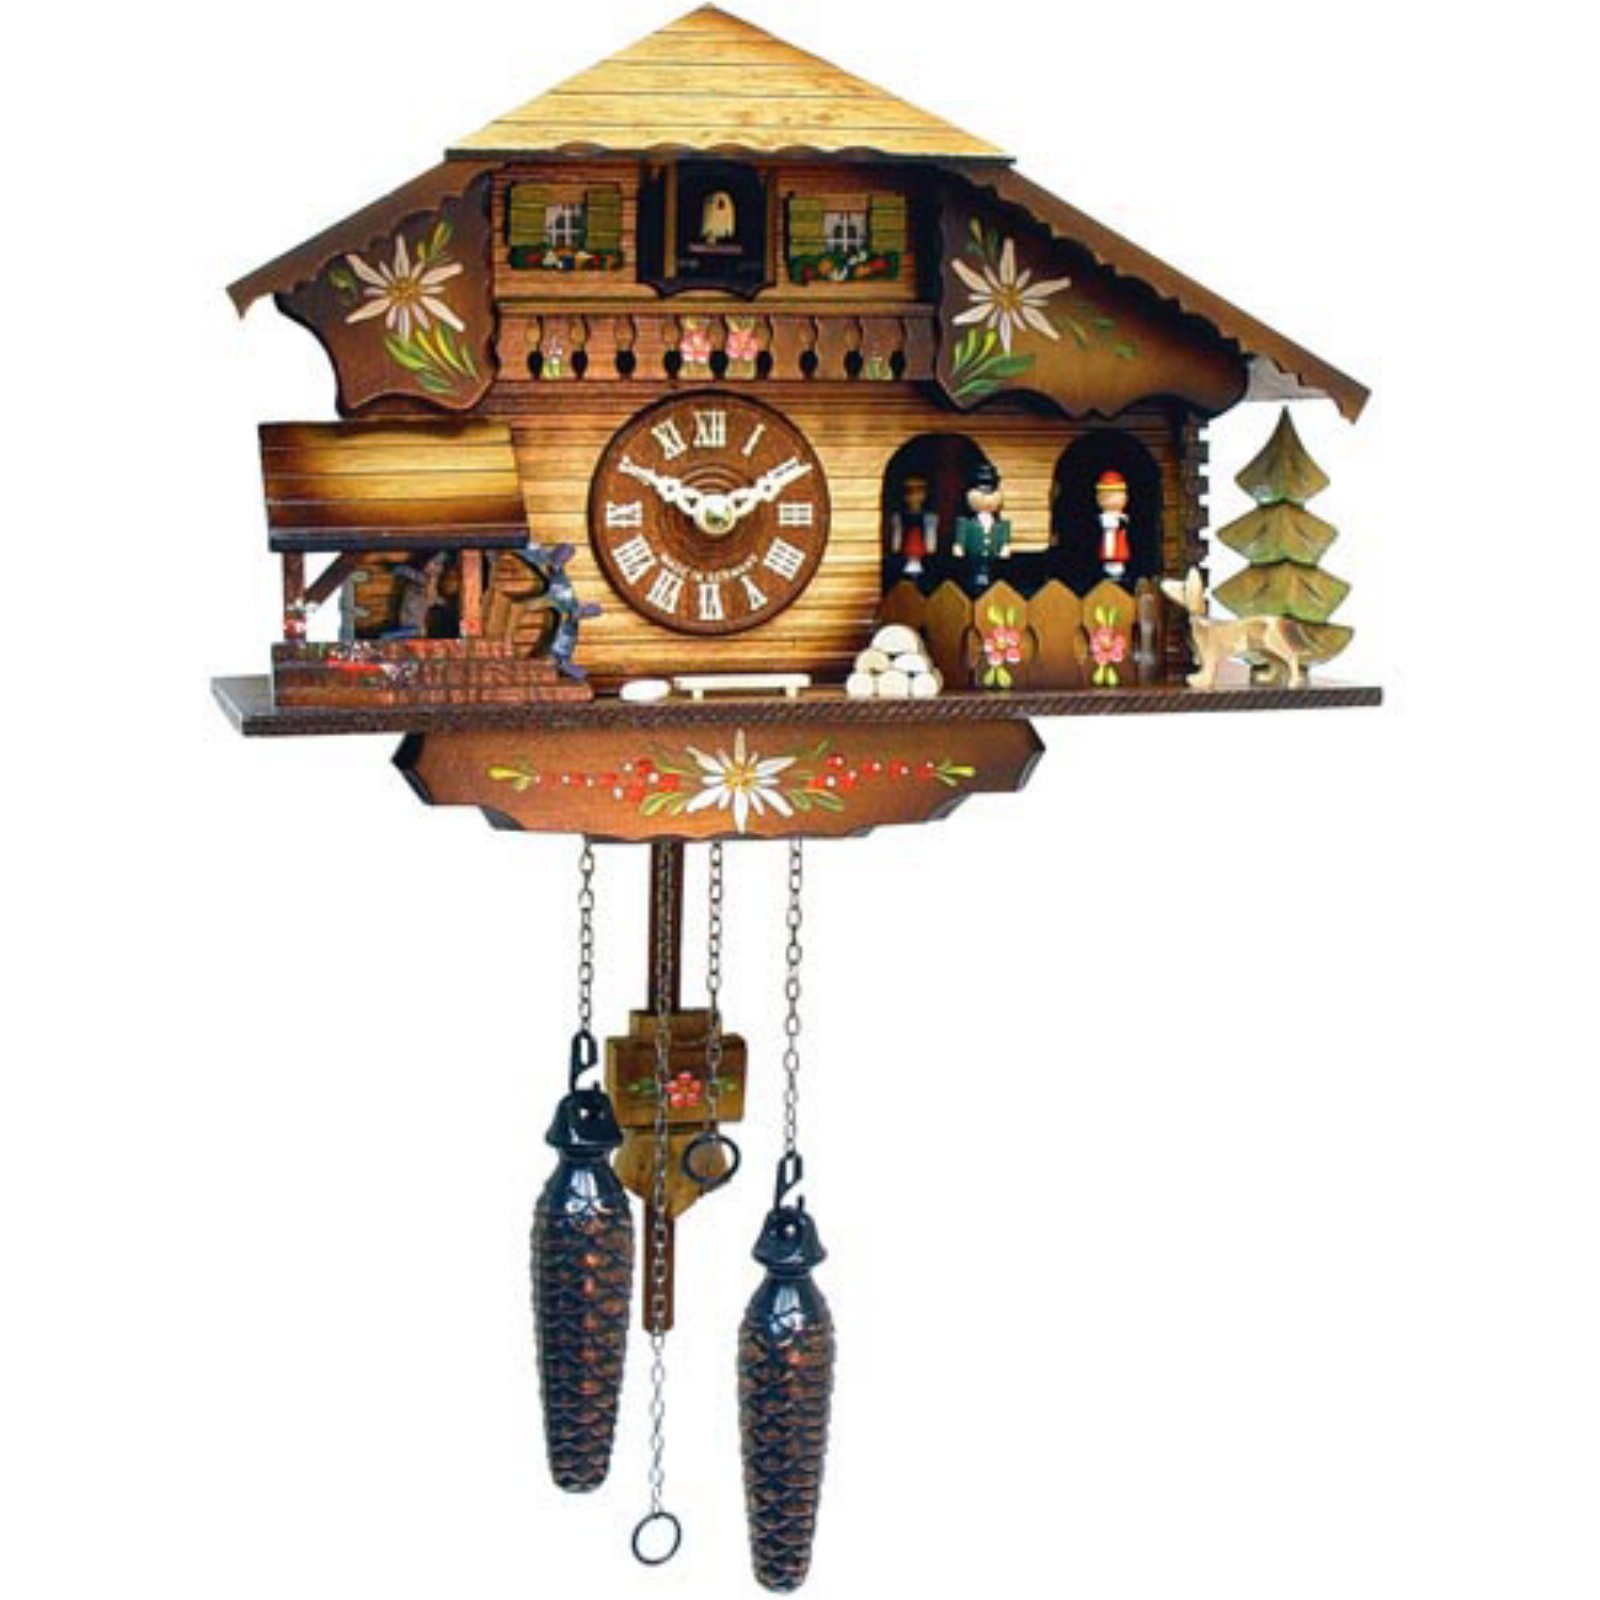 9 Inch Black Forest Beer Stein Cuckoo Clock